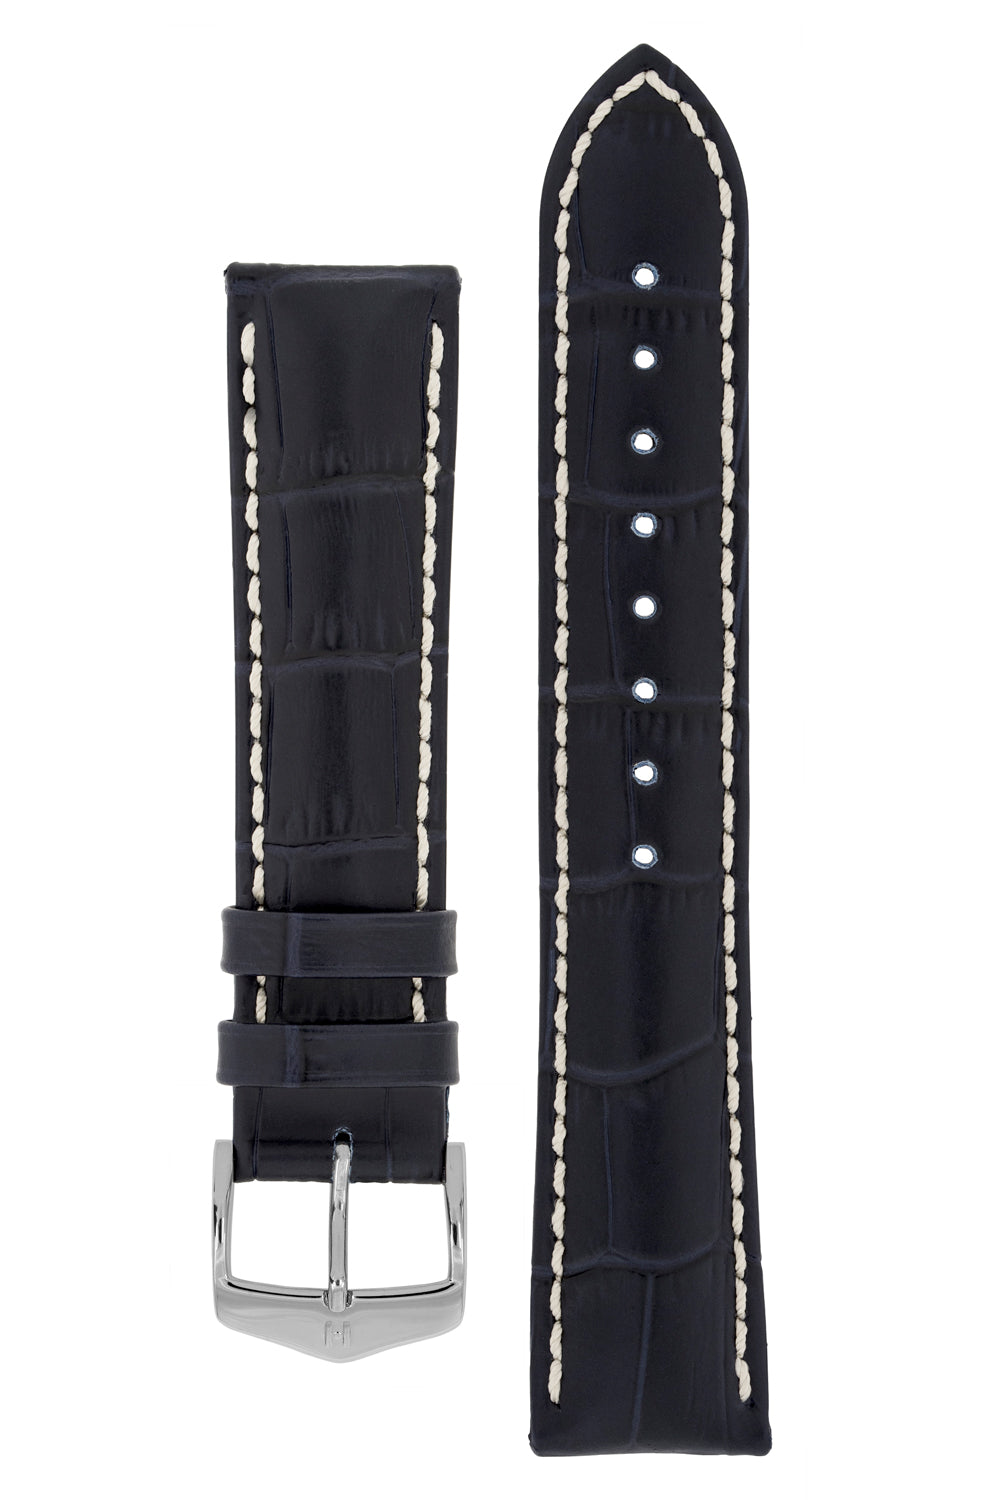 Hirsch MODENA Alligator Embossed Leather Watch Strap in DARK BLUE